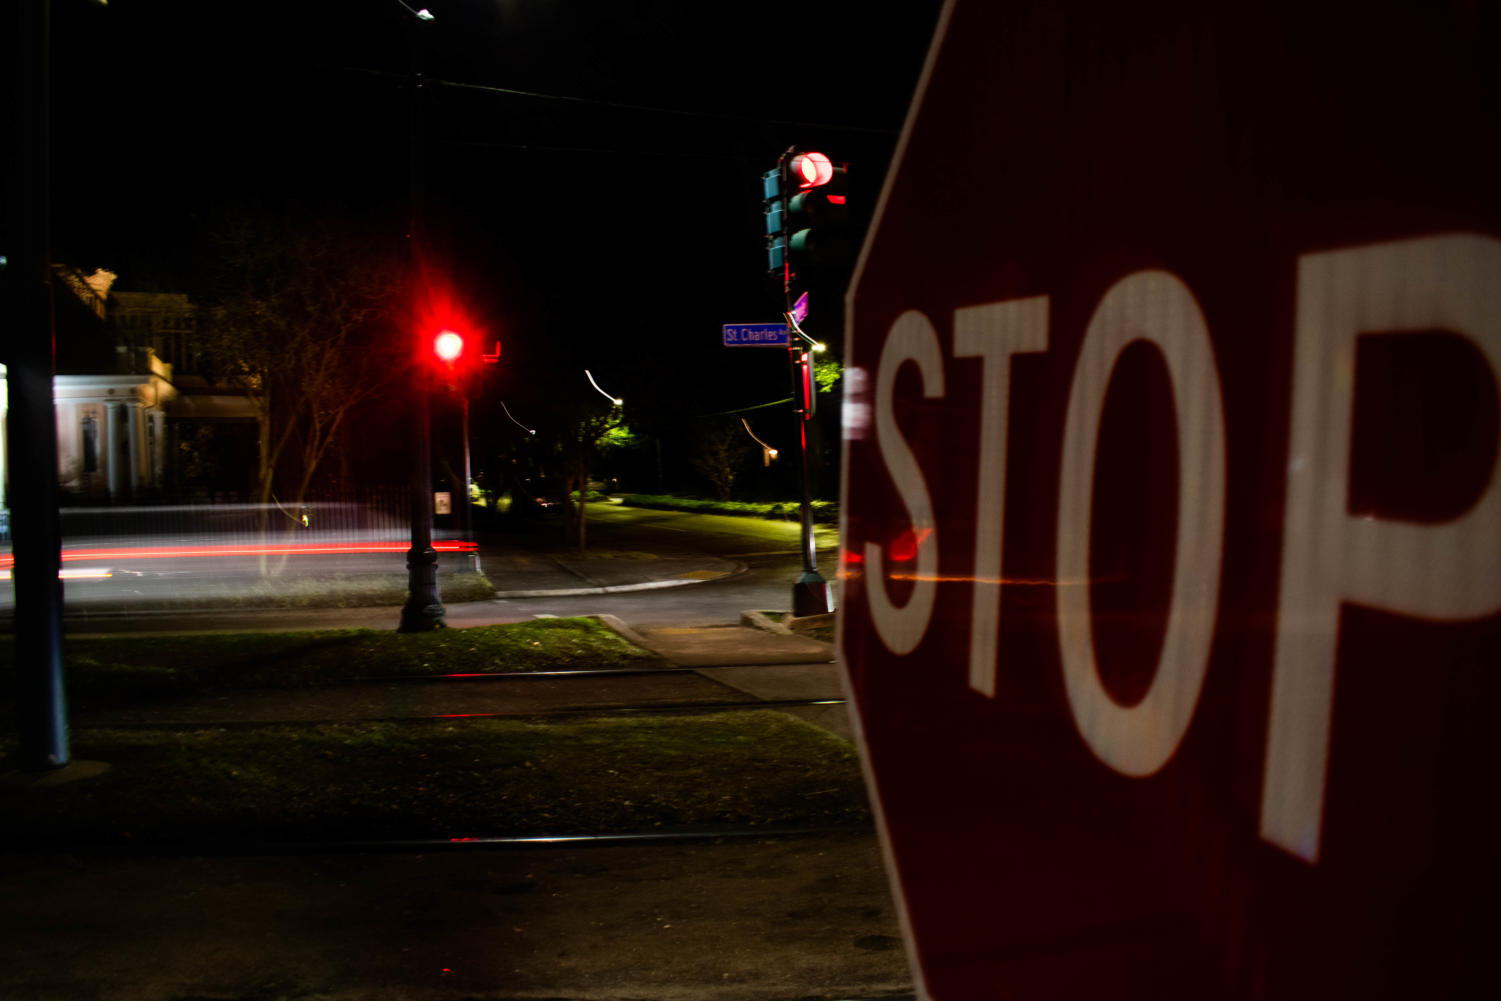 The stop sign placed at the crossroad of Nashville Avenue and St. Charles Avenue. The malfunctioning light has turned the streetlight to a four-way stop sign. Photo credit: Michael Bauer